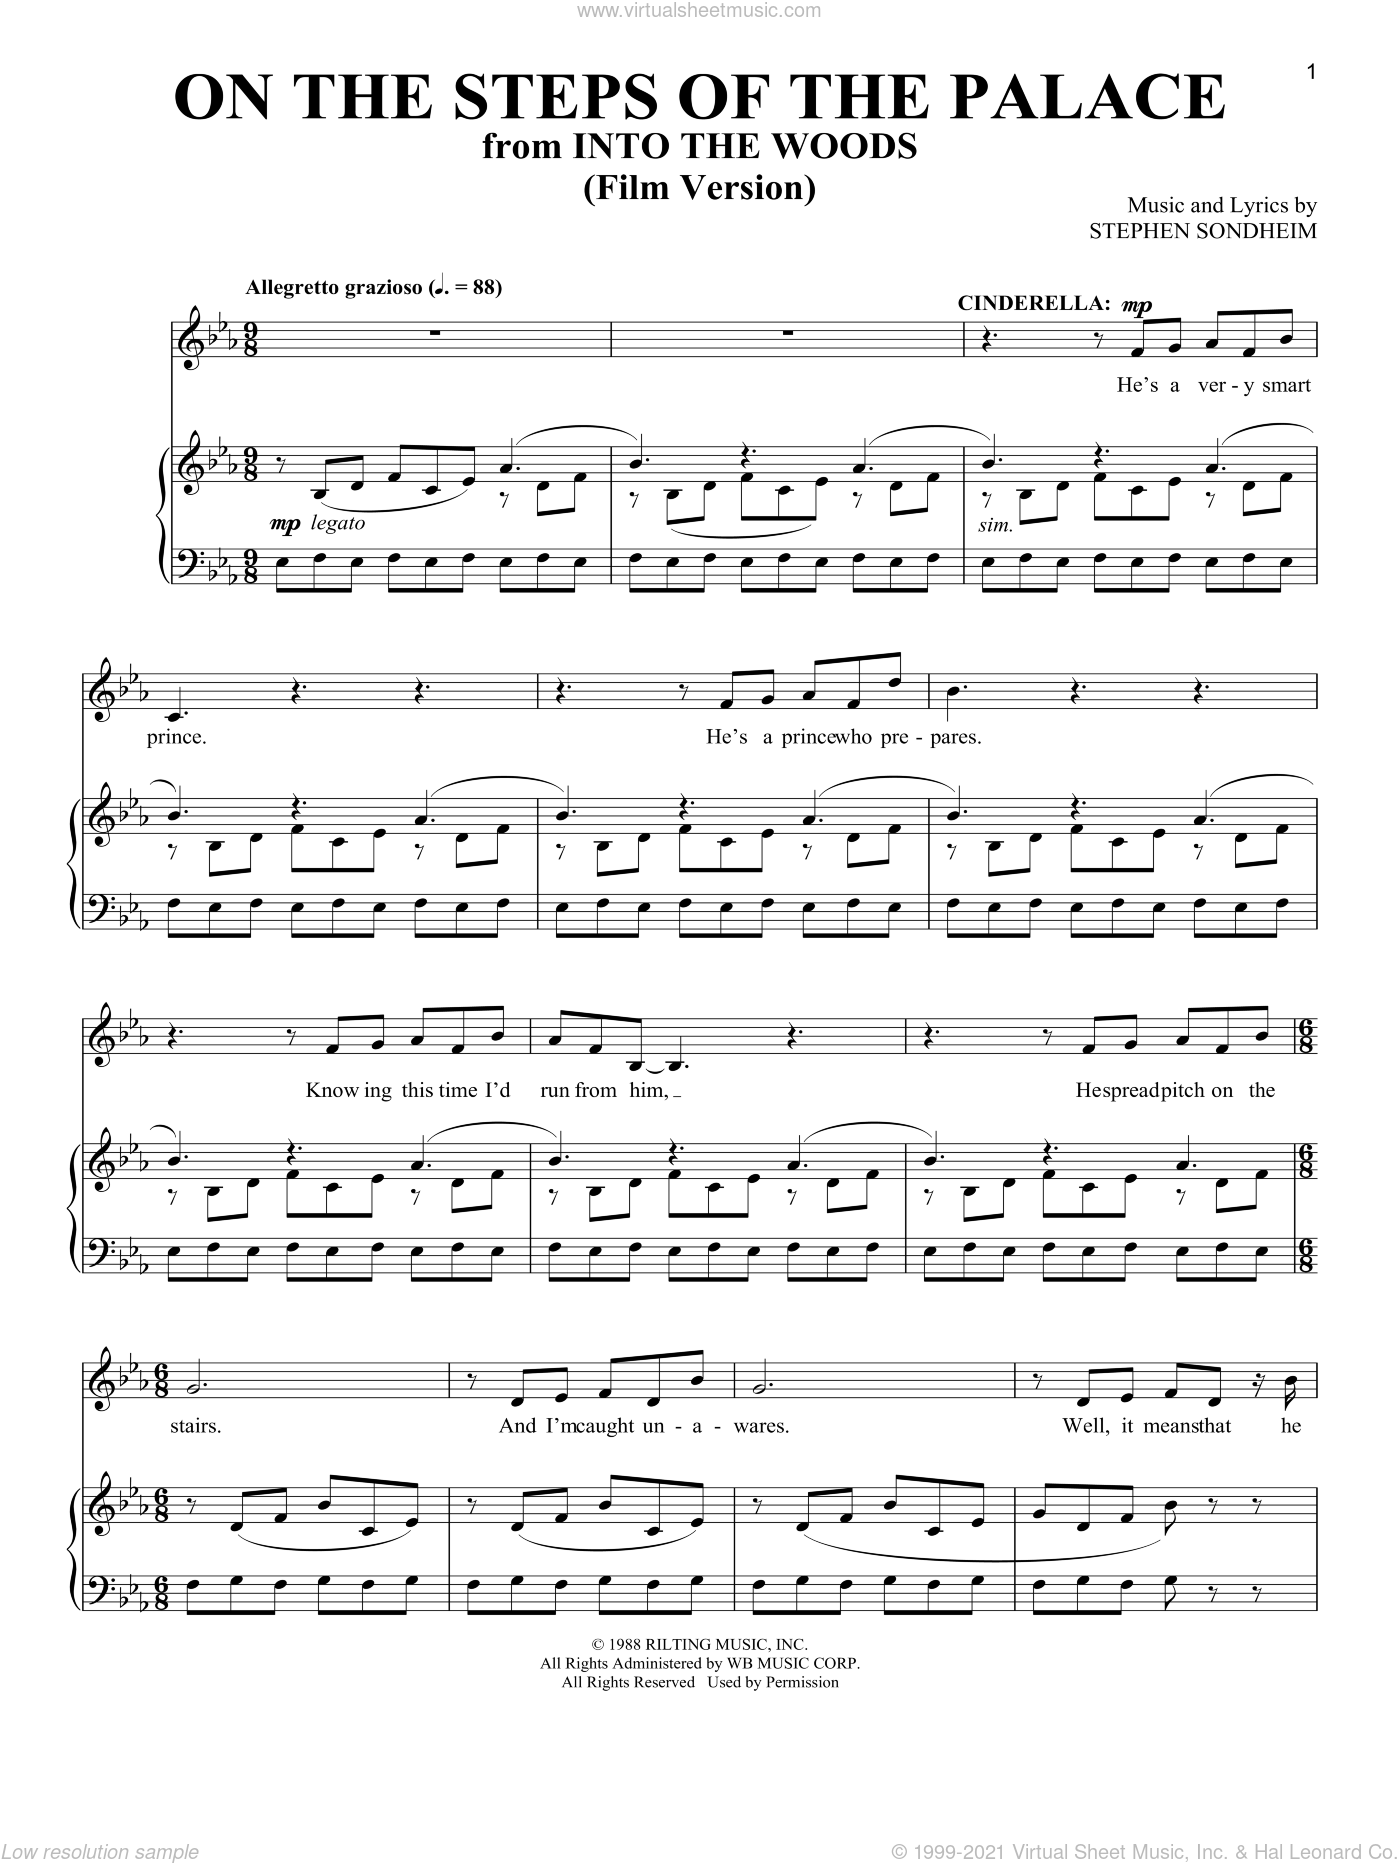 On The Steps Of The Palace (Film Version) (from Into The Woods) sheet music for voice and piano by Stephen Sondheim, intermediate skill level